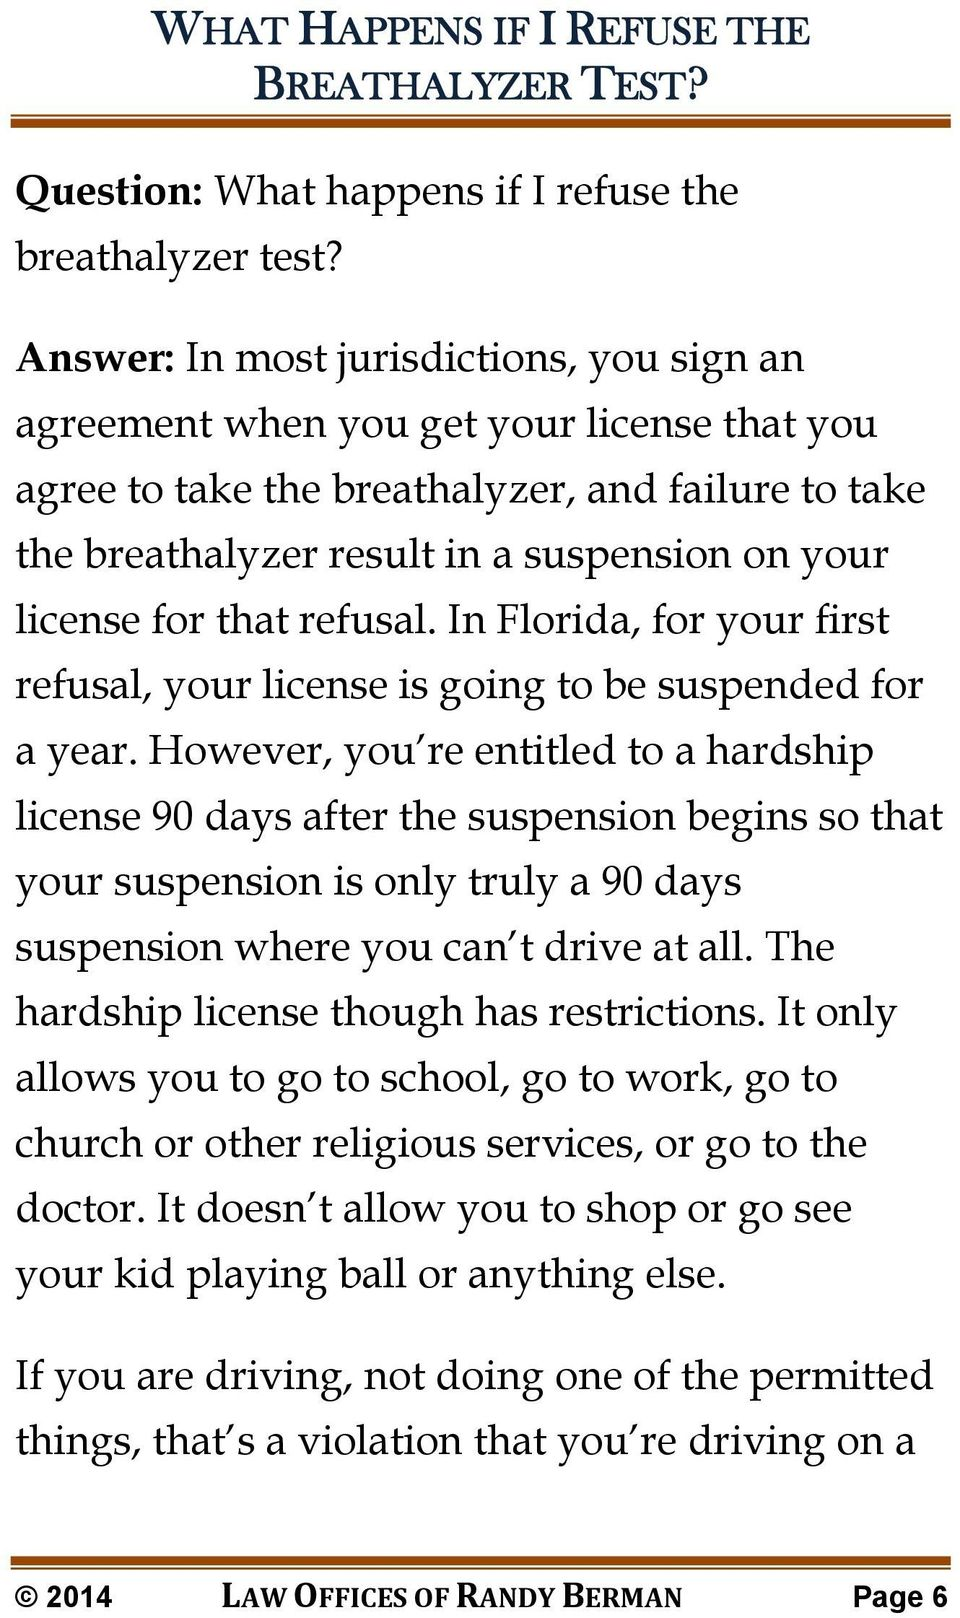 that refusal. In Florida, for your first refusal, your license is going to be suspended for a year.